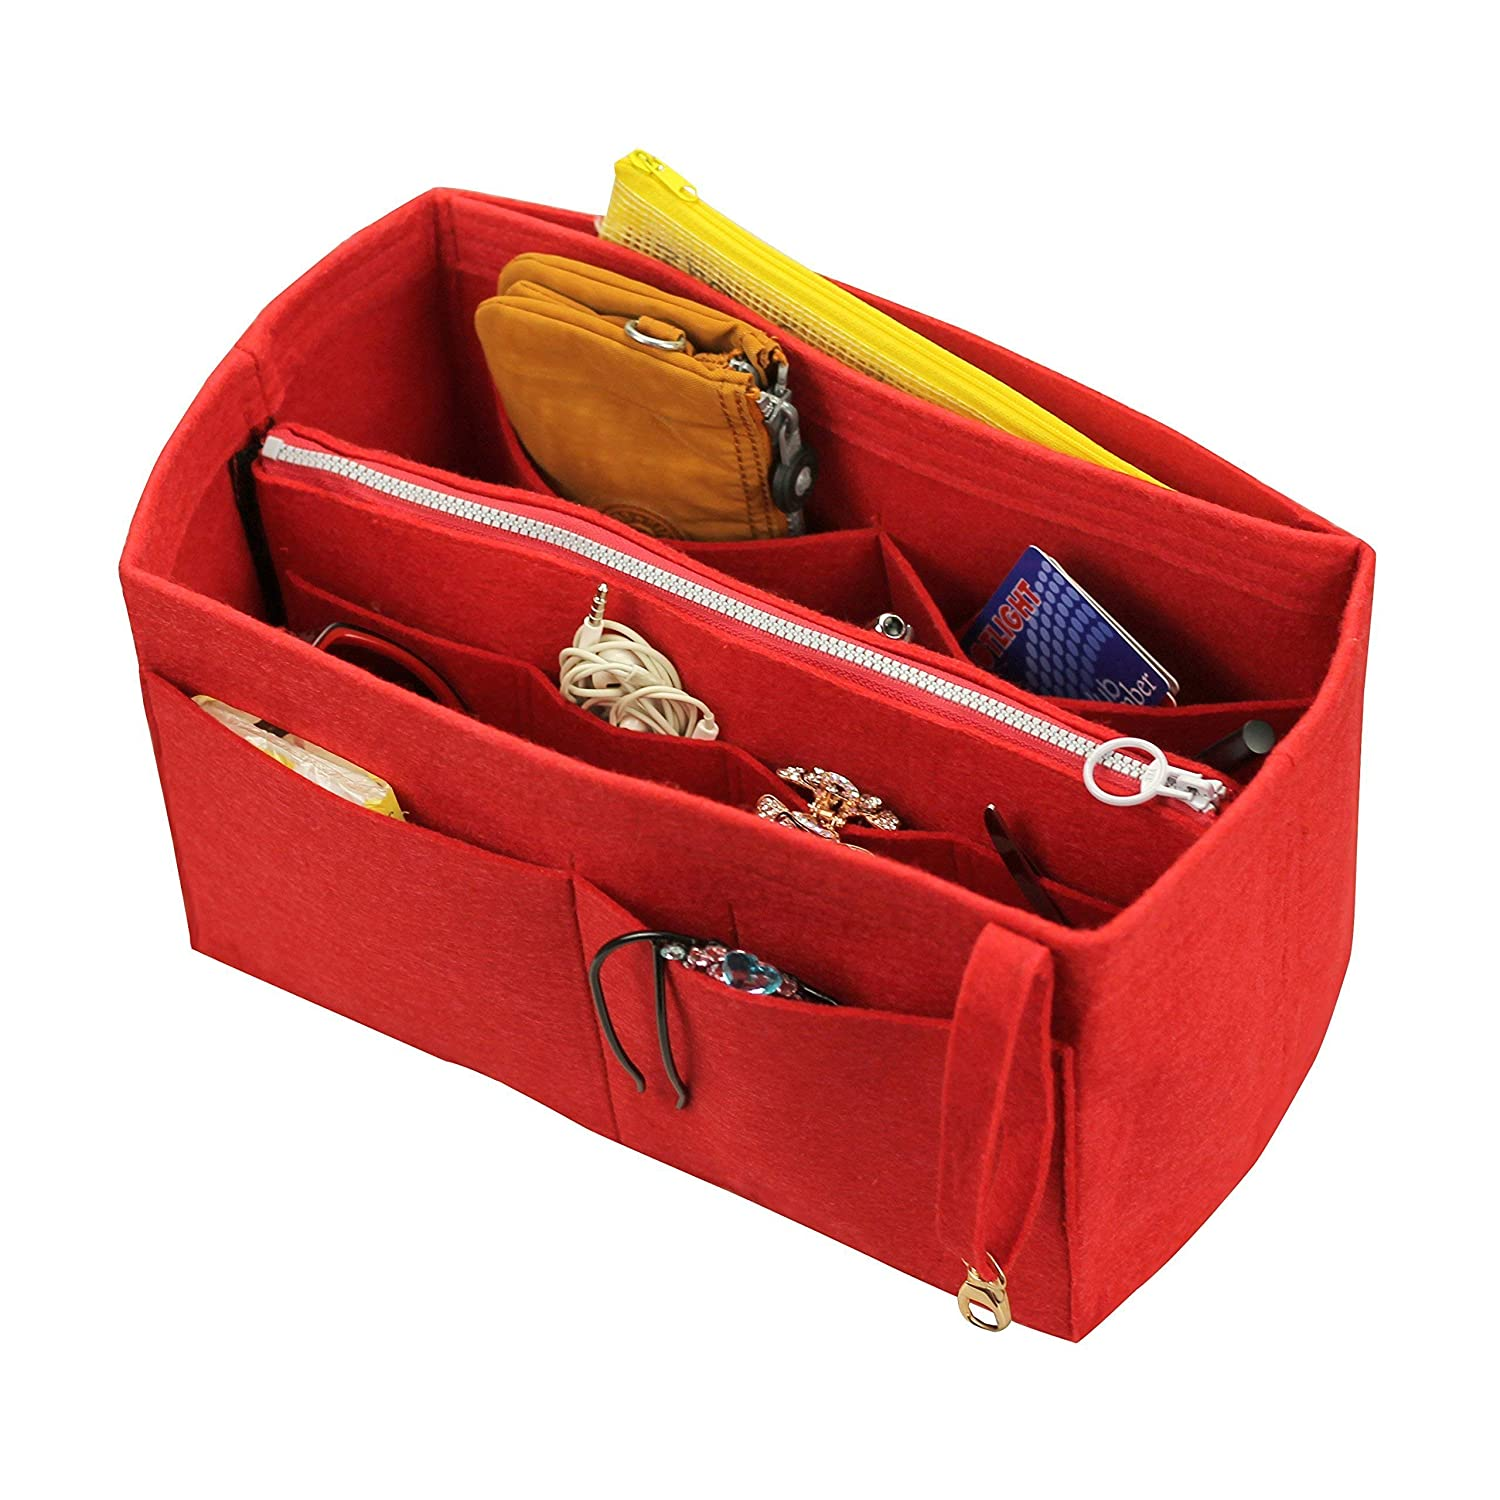 [Fits Neverfull PM/Speedy 25, Red] Felt Organizer (w/Detachable Zipper Bag), Tote Felt Purse Insert, Cosmetic Makeup Diaper Handbag, Zipped Belongings Pocket